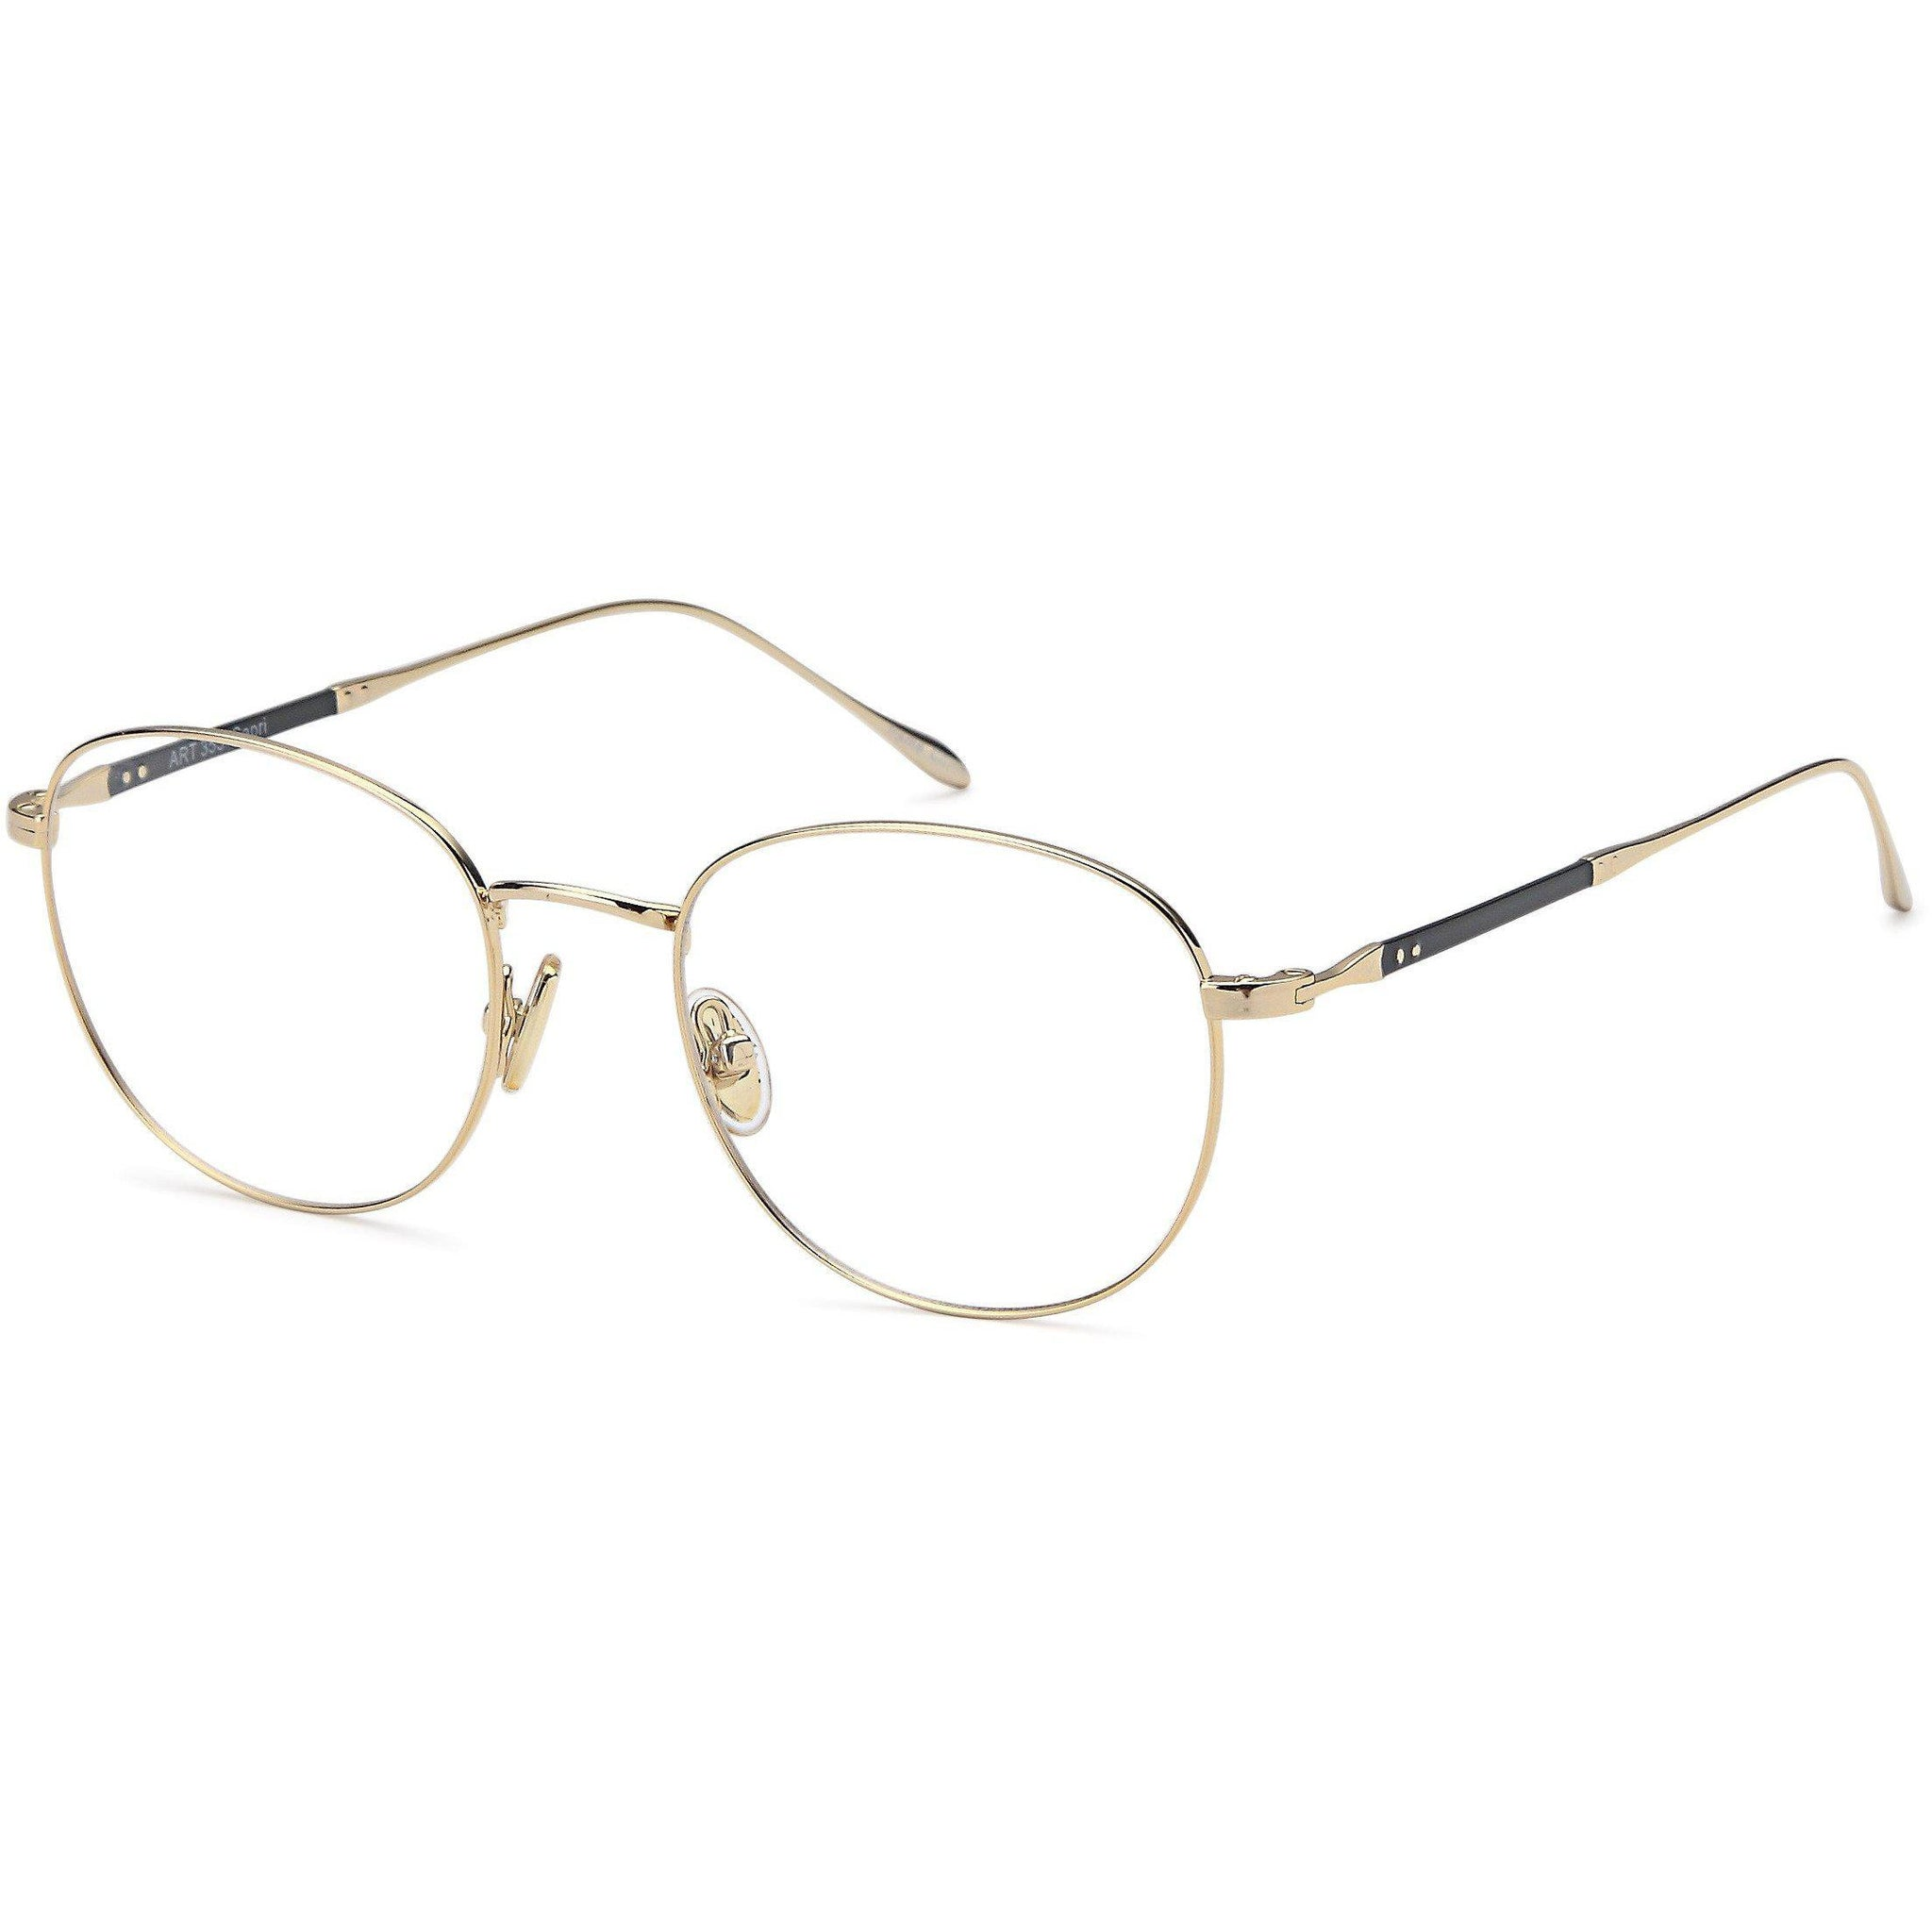 Sophistics Prescription Glasses ART 353 Frame